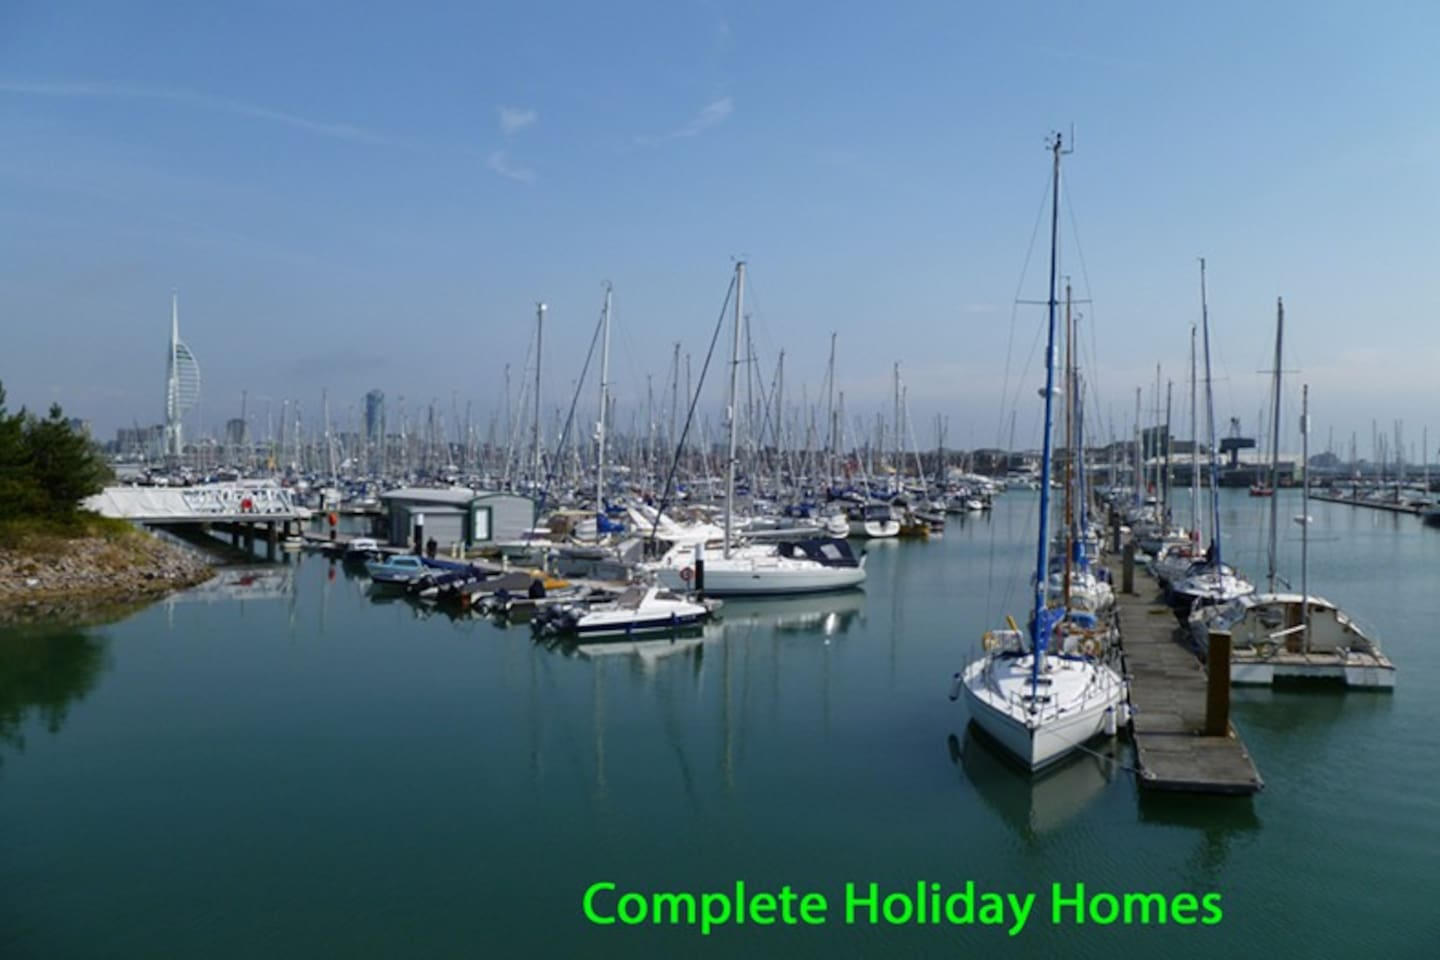 Harbour View 4 - 4 bedroom apartment close to waterfront and marinas